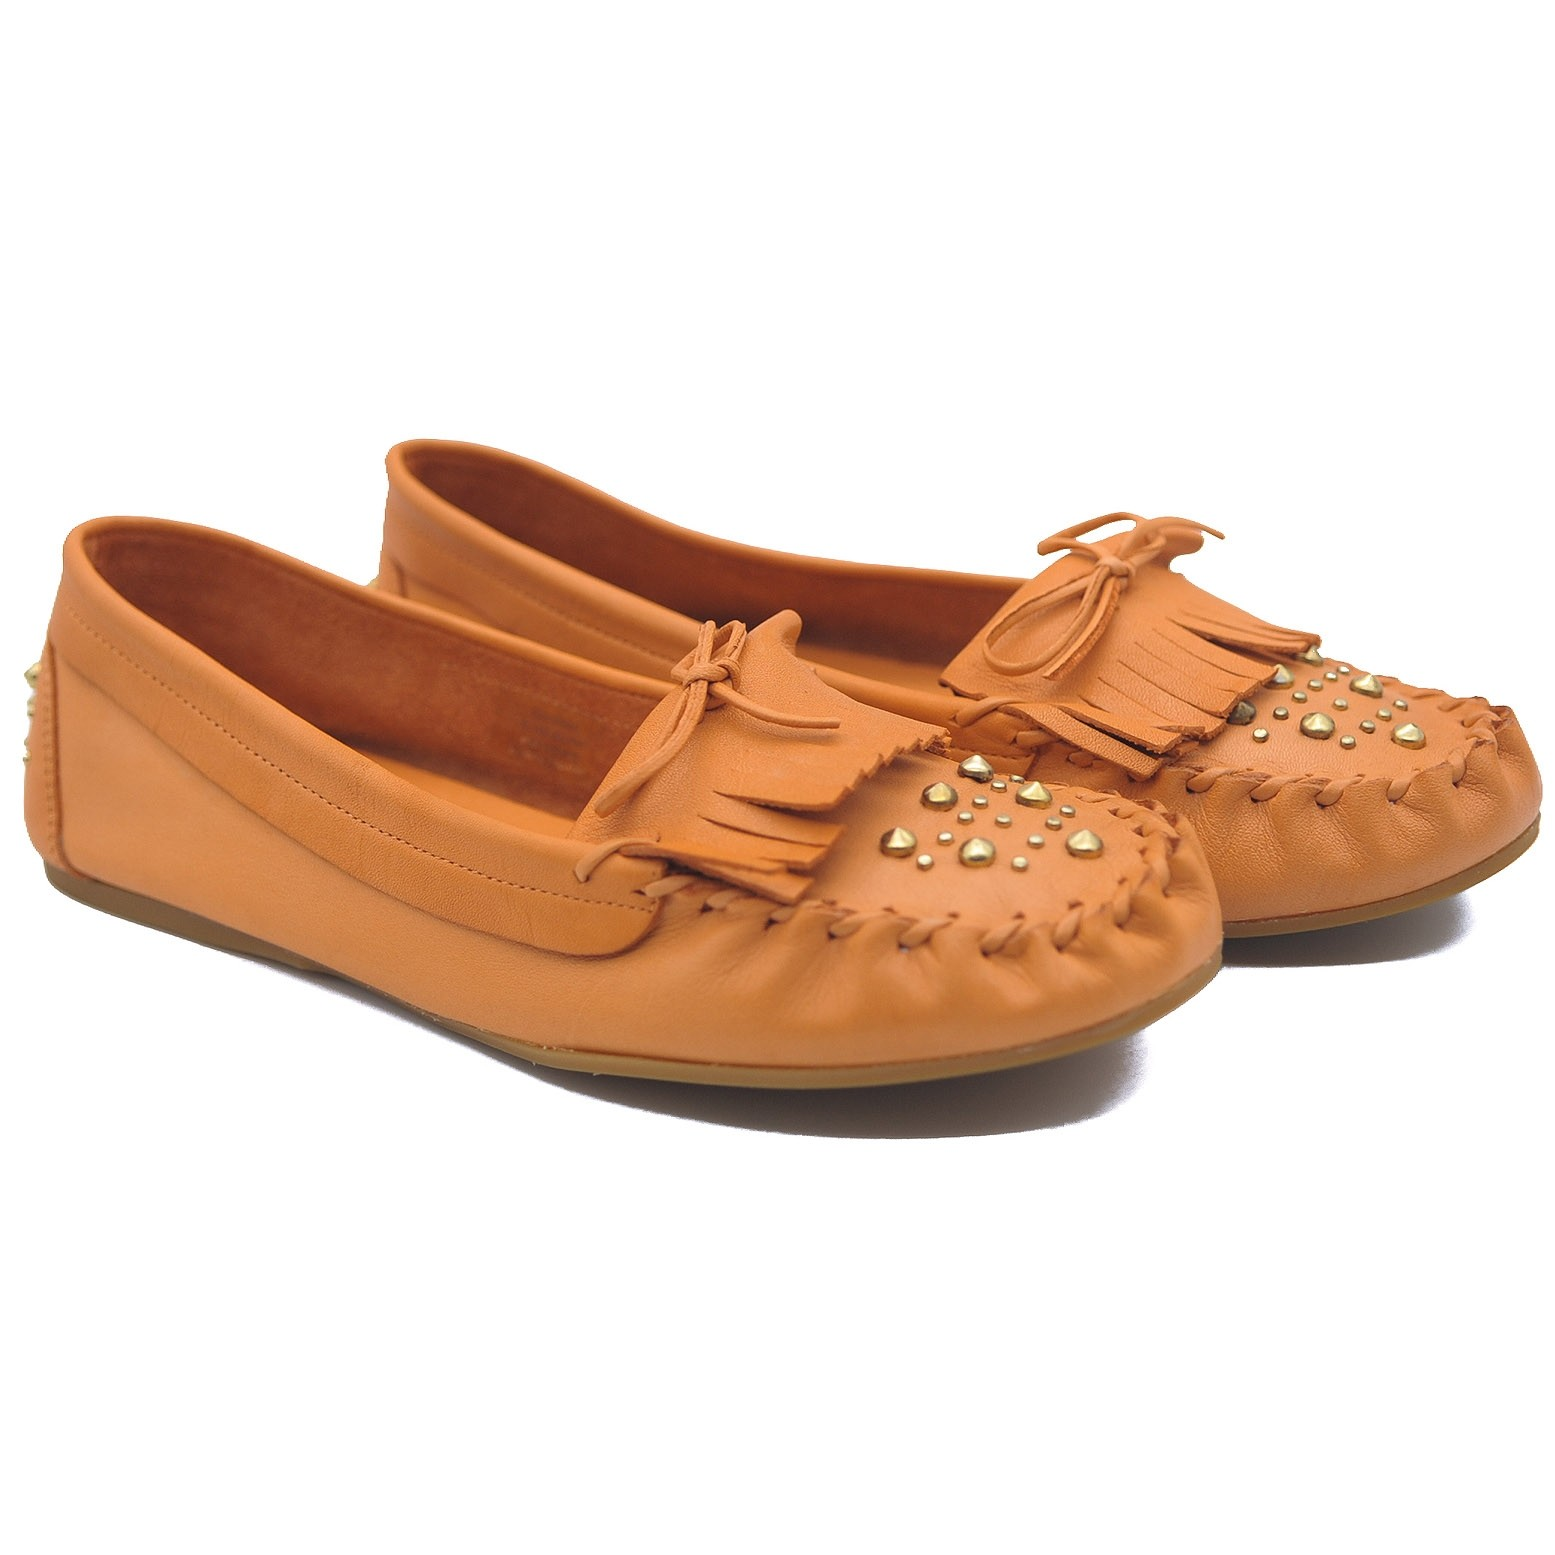 Goody2Shoes Ladies Orange Leather Moccasins with Gold Studding